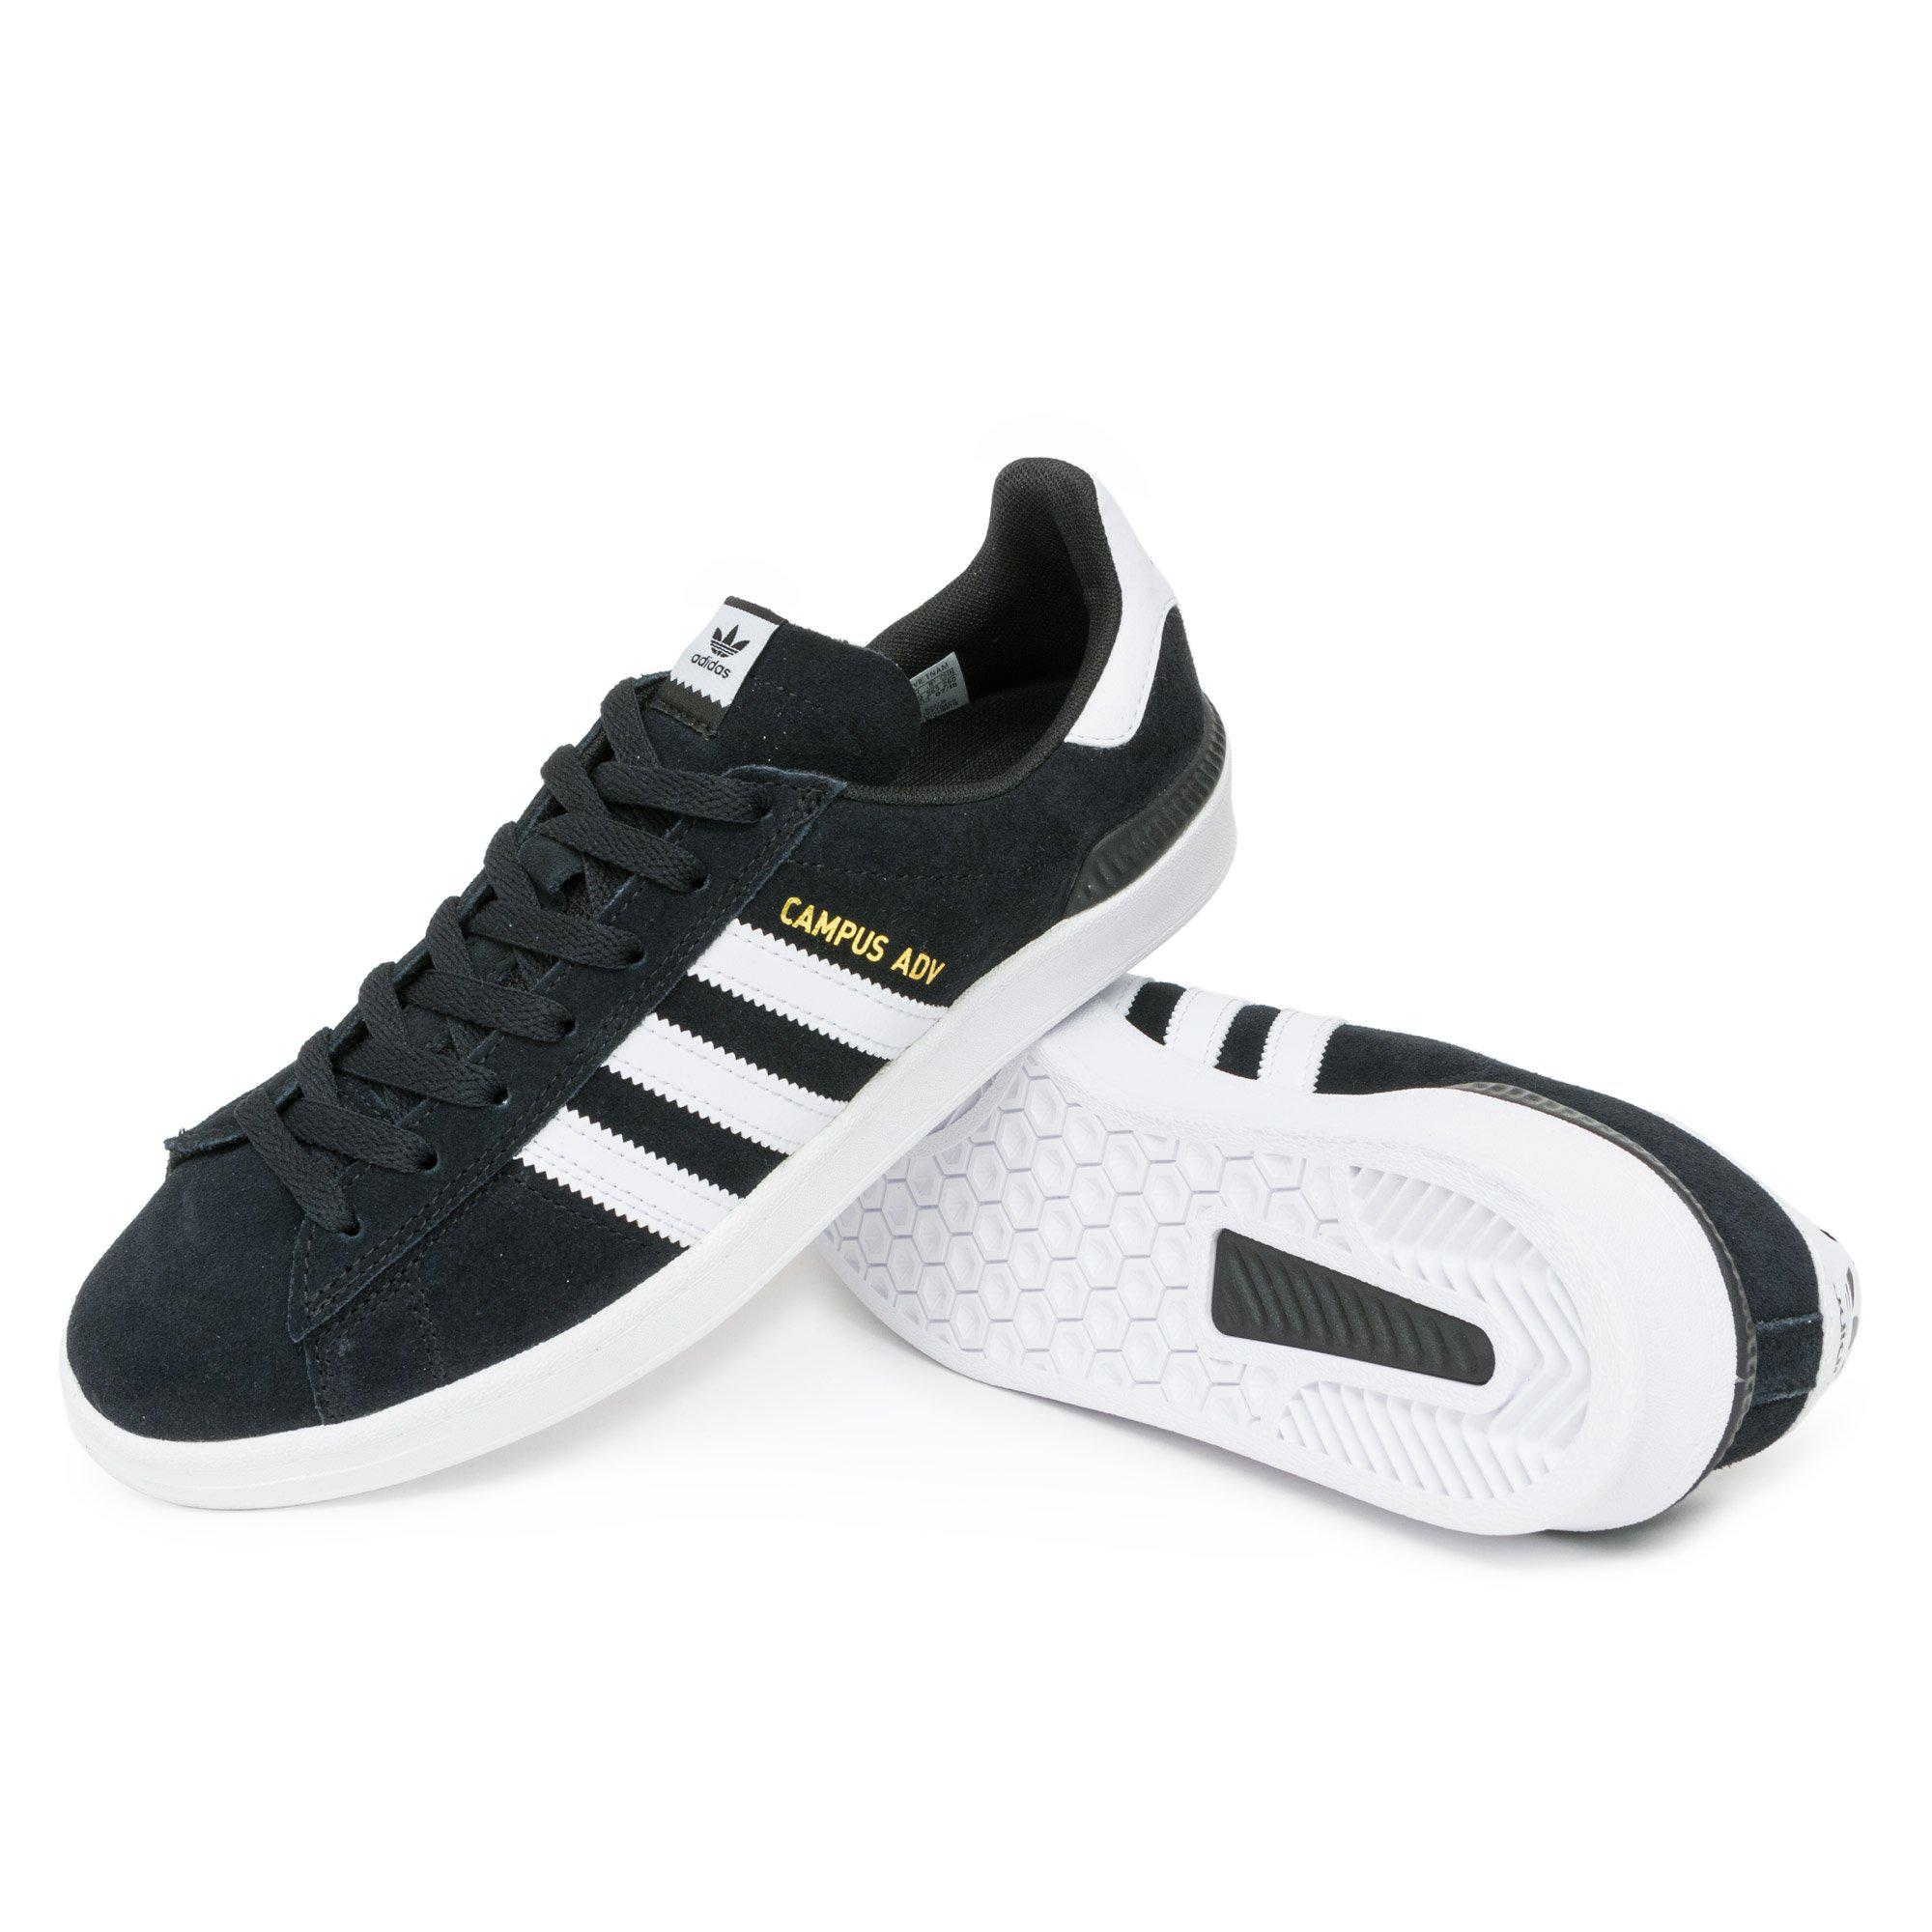 huge selection of 776c0 b2662 Adidas - Black Campus Adv Shoes for Men - Lyst. View fullscreen